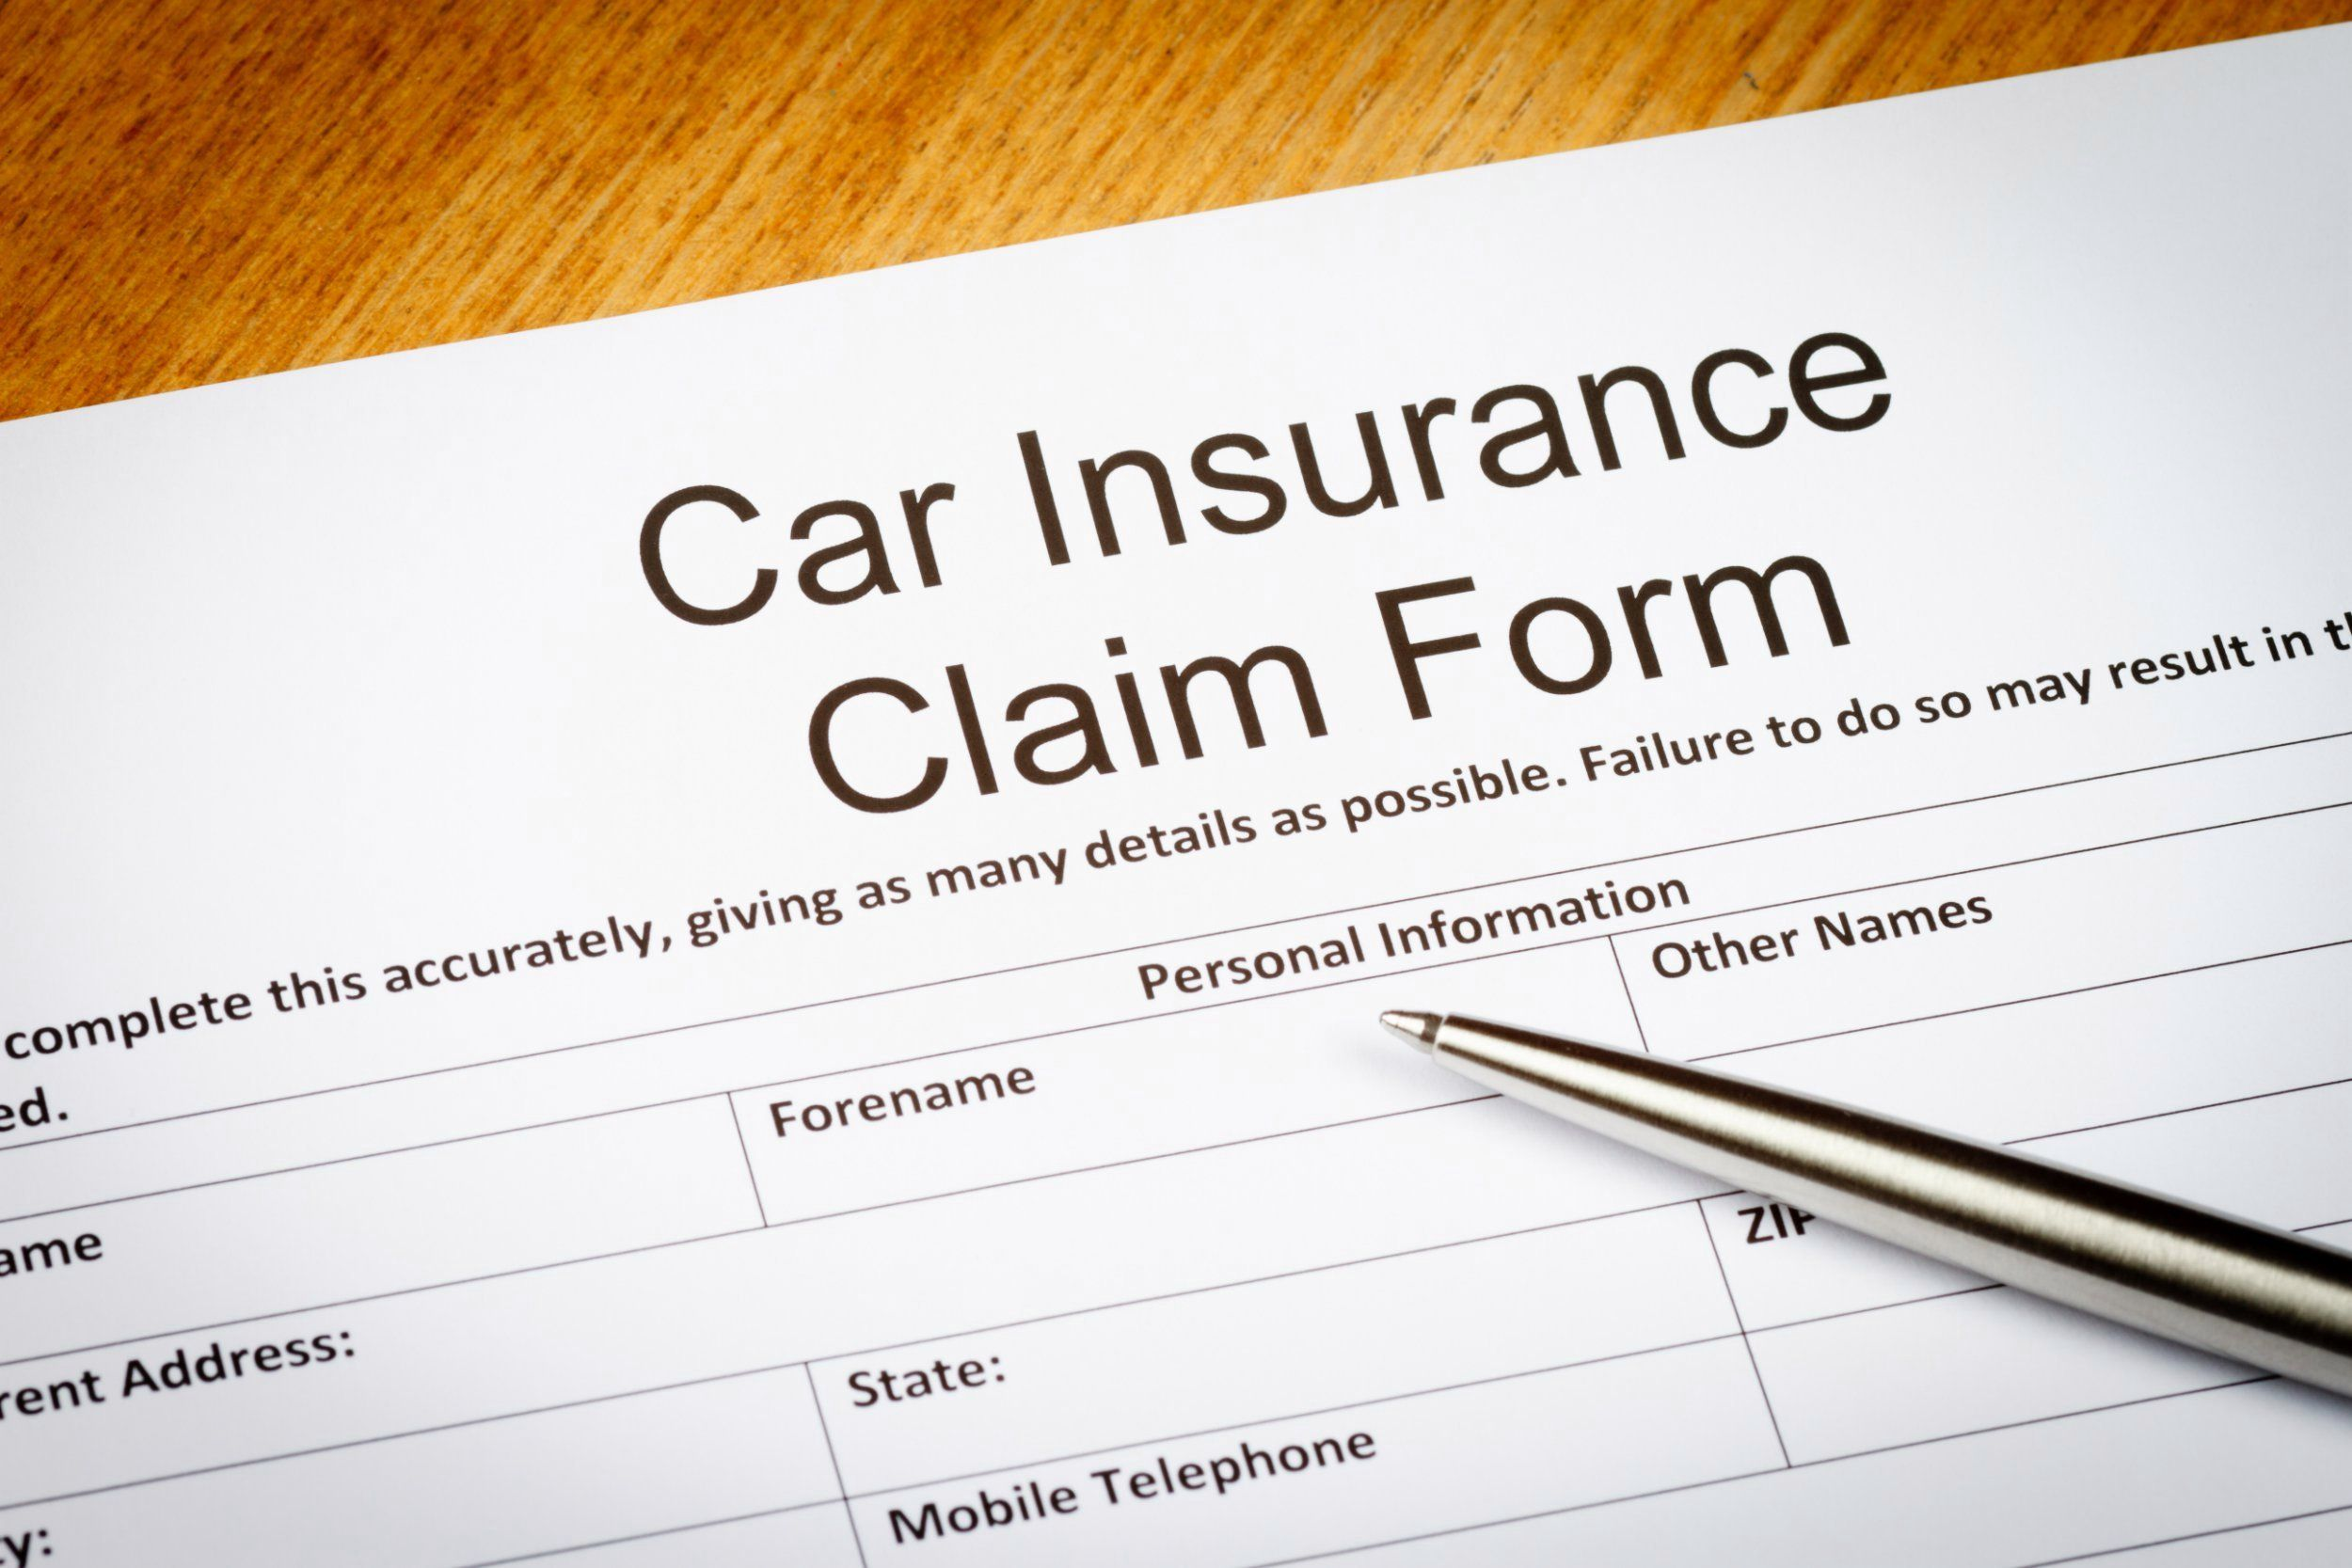 Best Way To Fill Car Insurance Claims (With images) Car